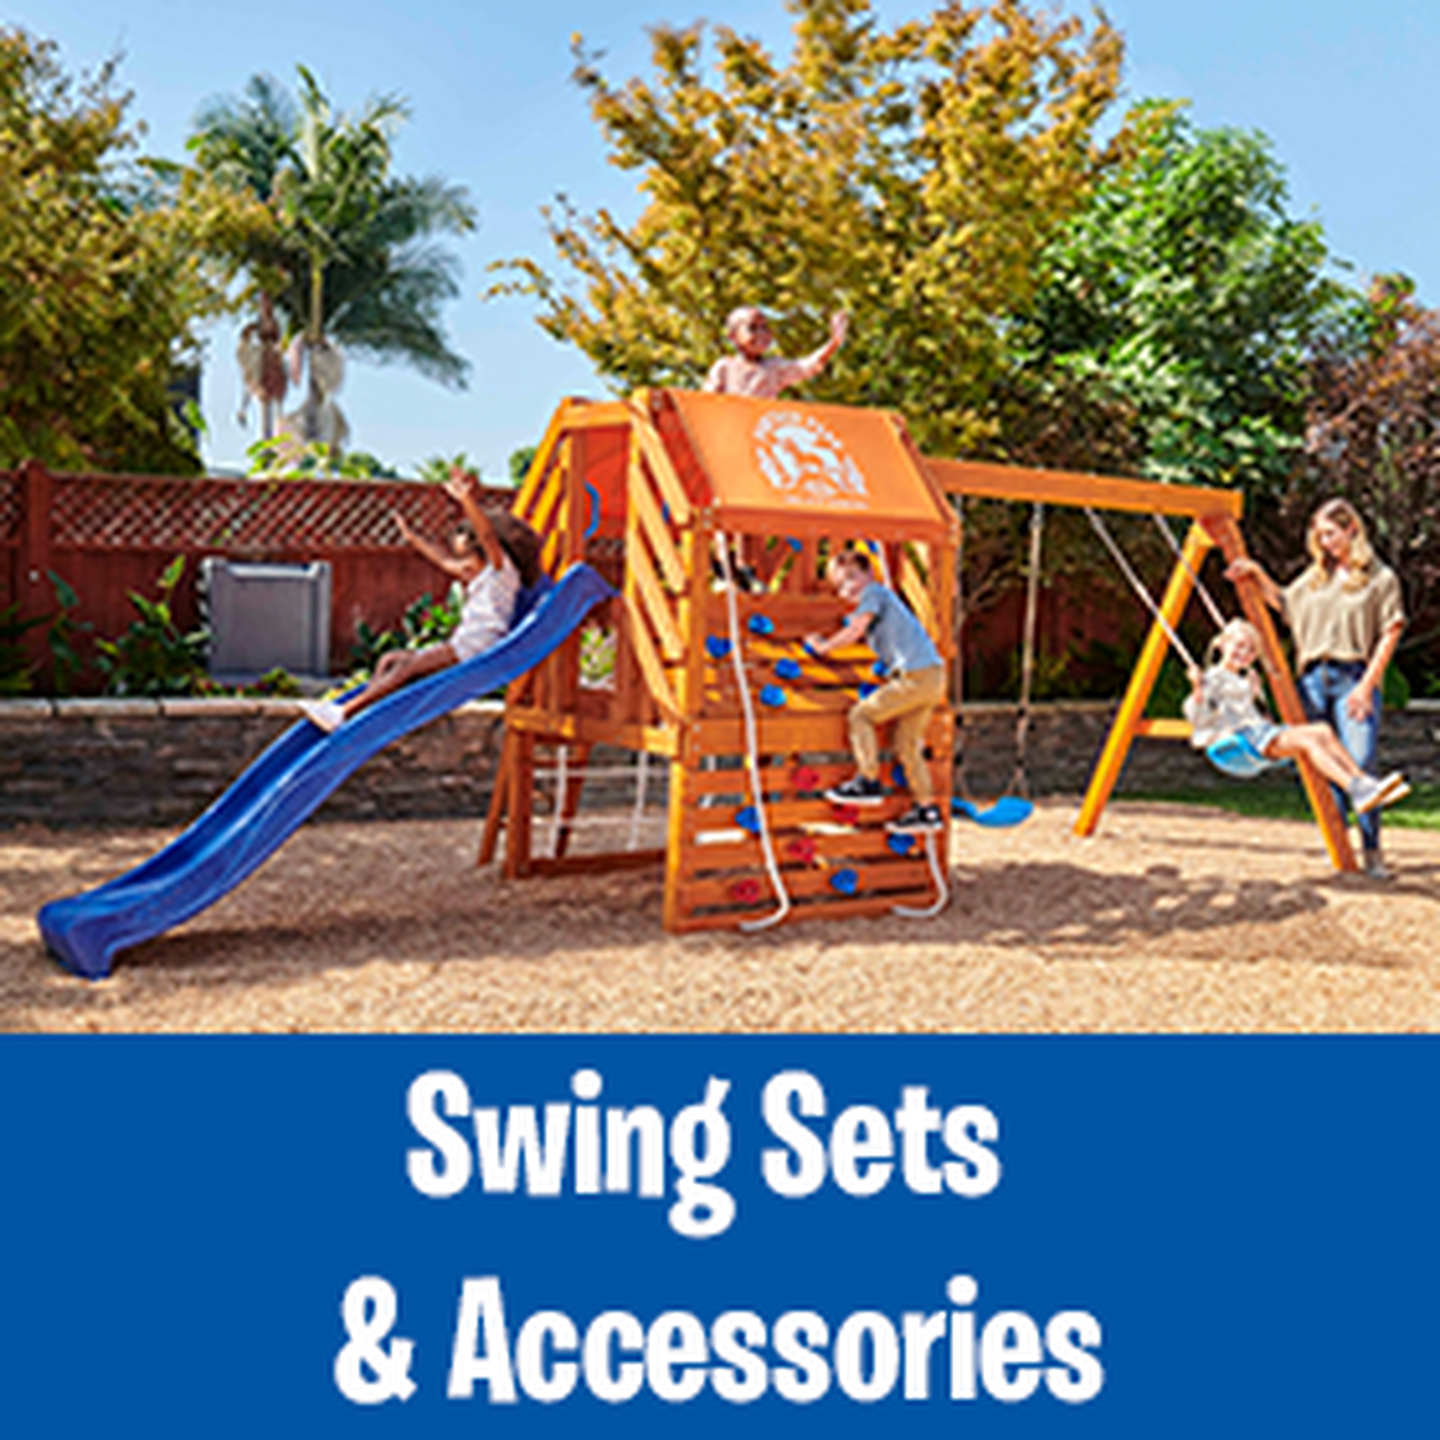 Swing Sets & Accessories